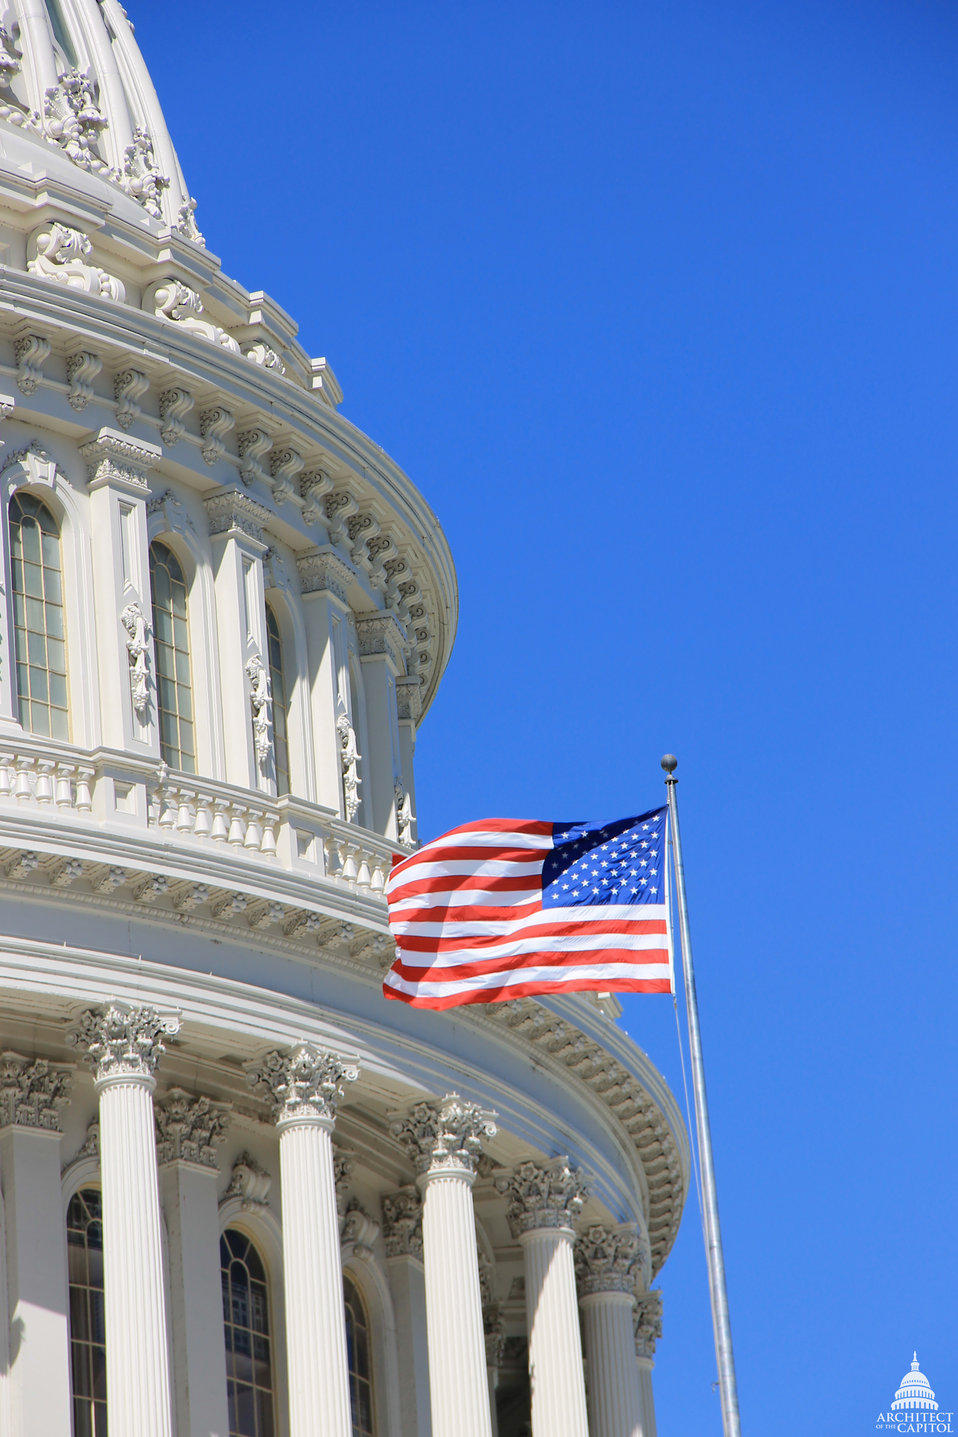 Flag Flying on the U.S. Capitol